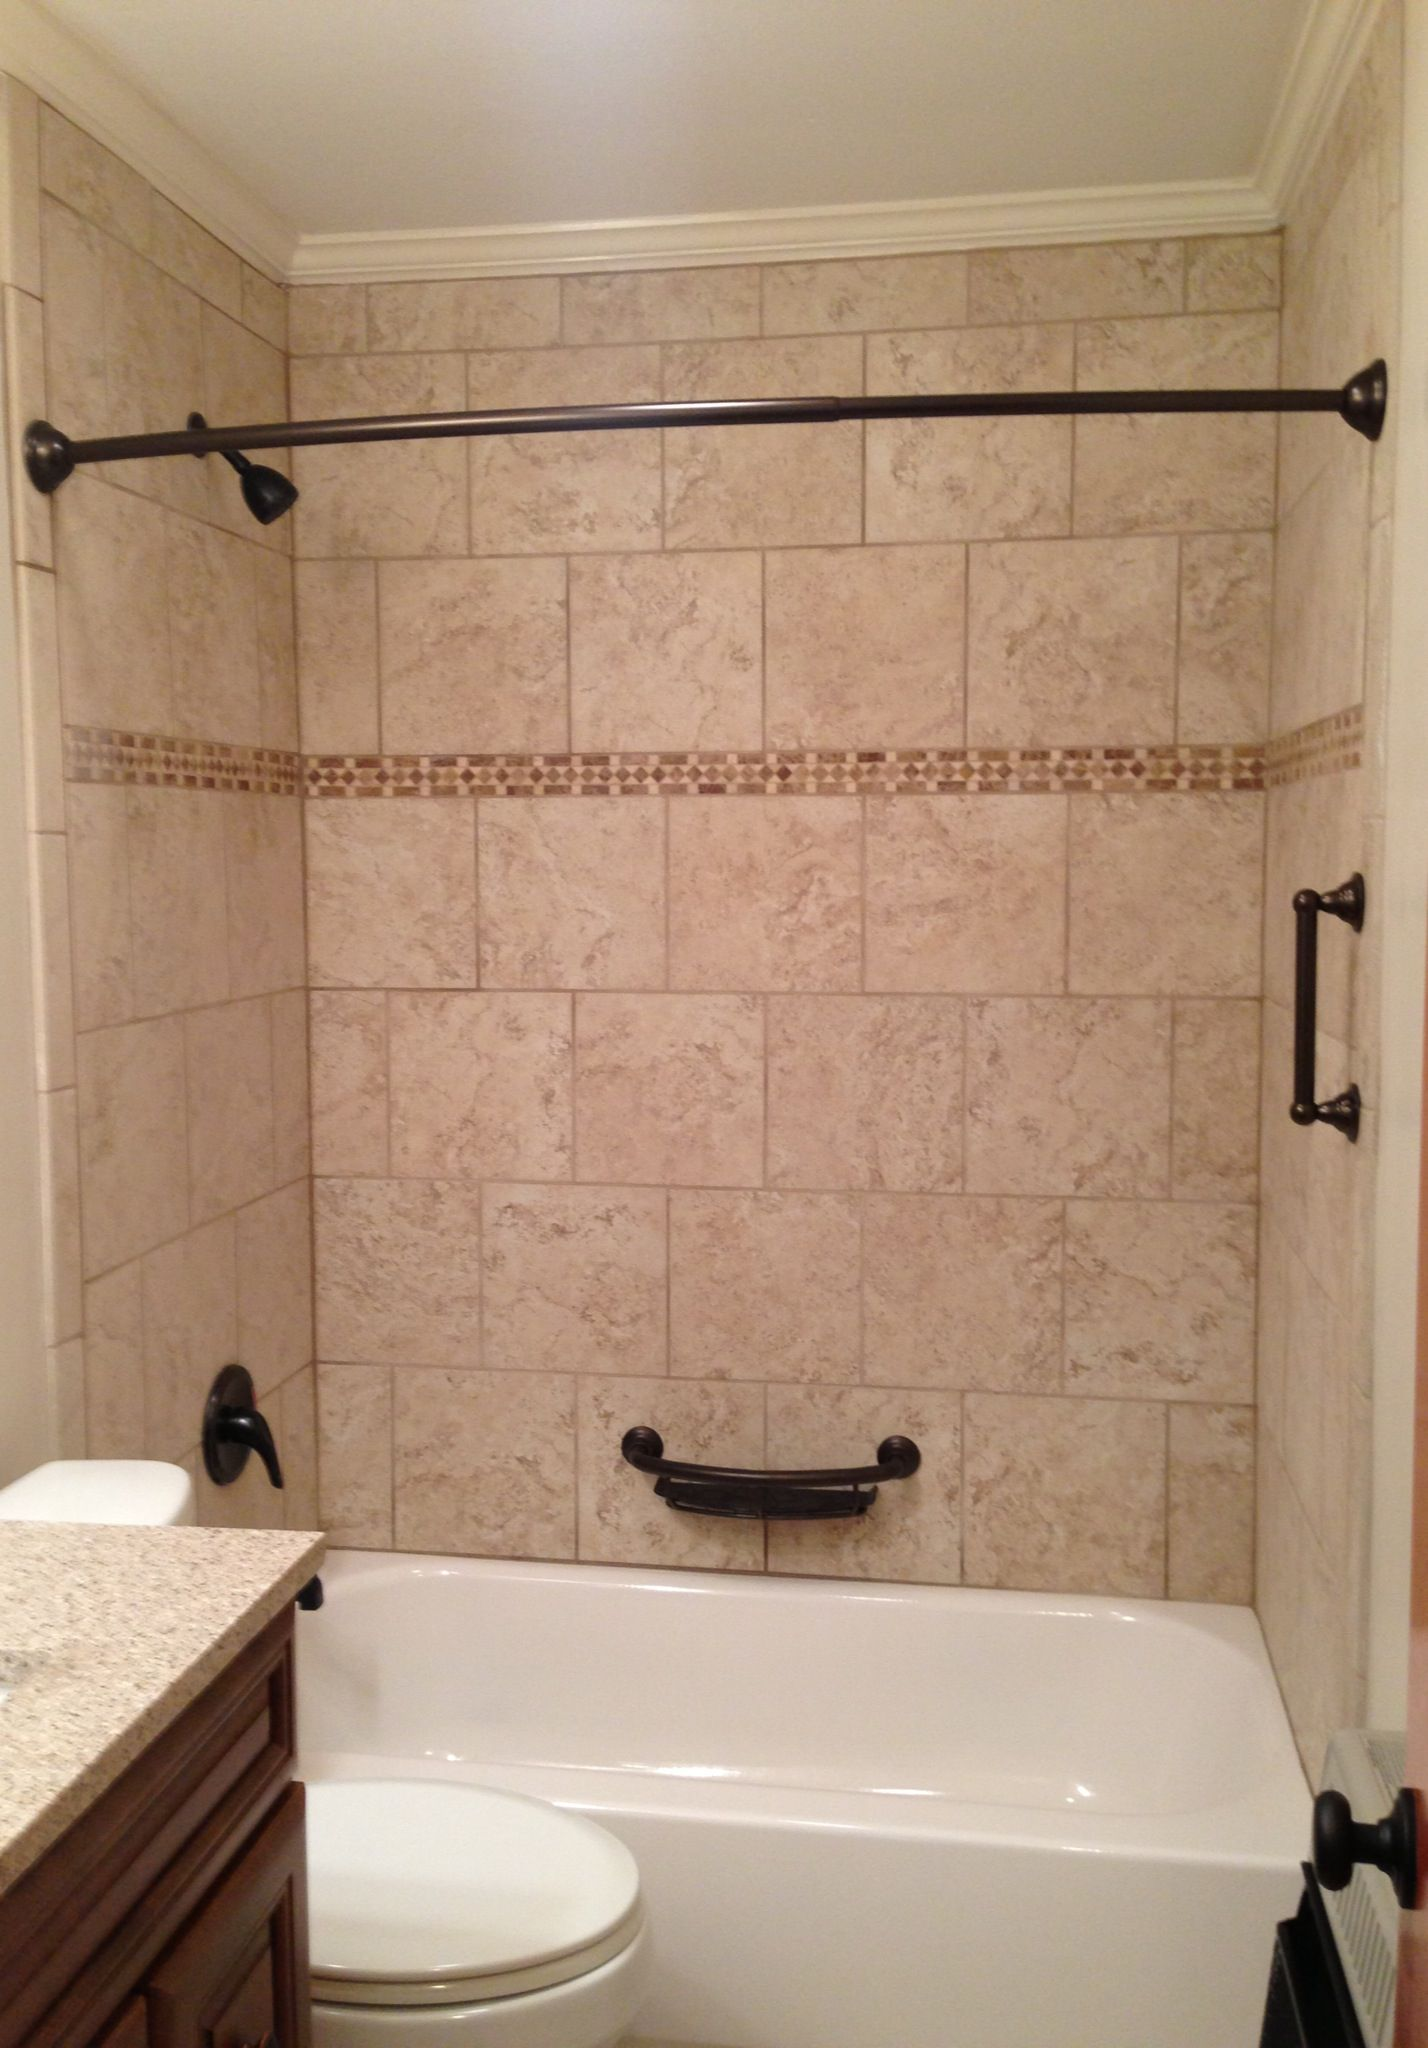 Tile tub surround. Beige tile bathtub surround with oil rubbed ...